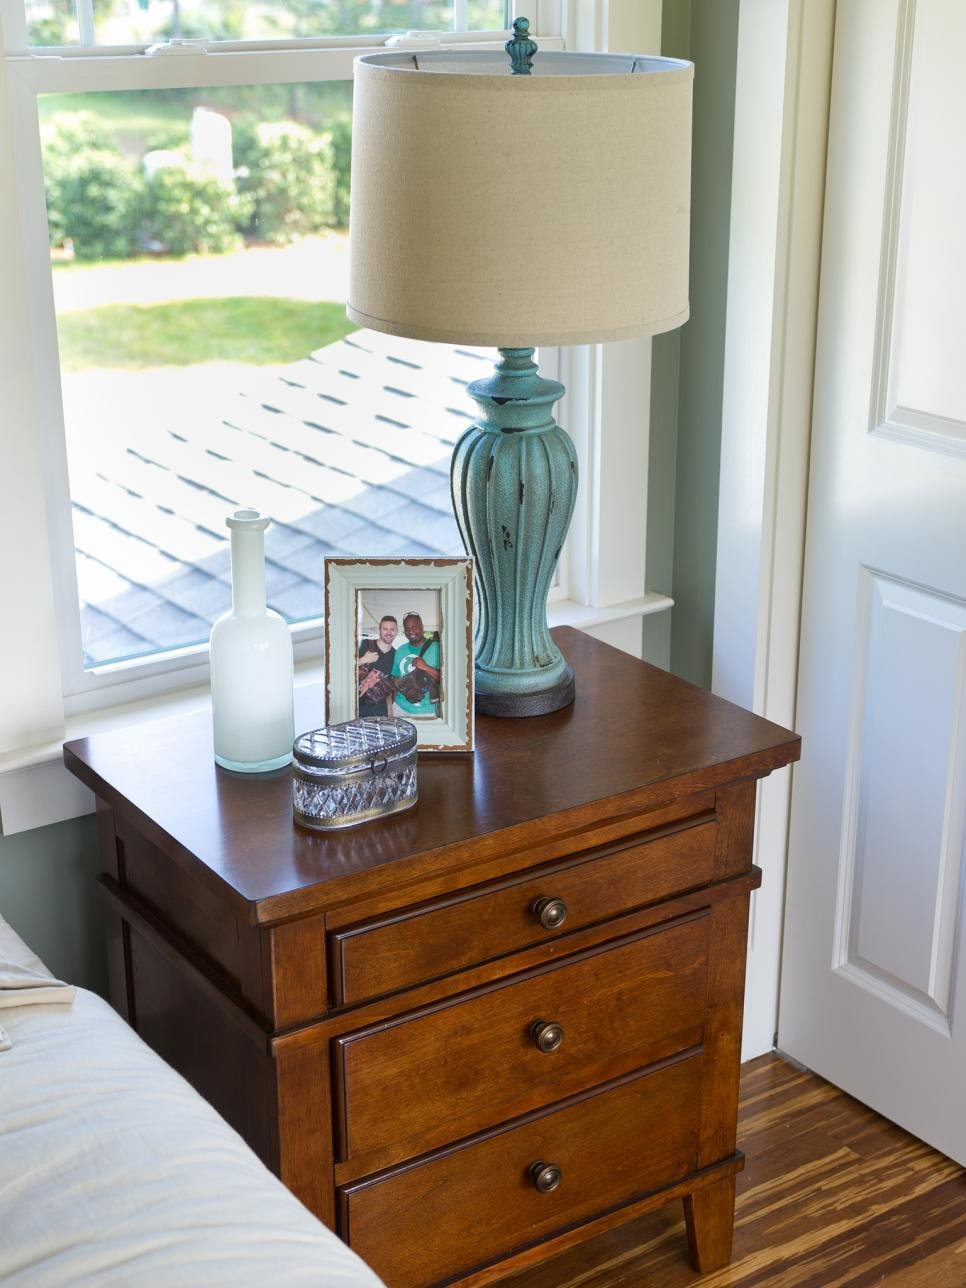 Best Light Fixtures From Blog Cabin 2014 Diy Network Blog With Pictures